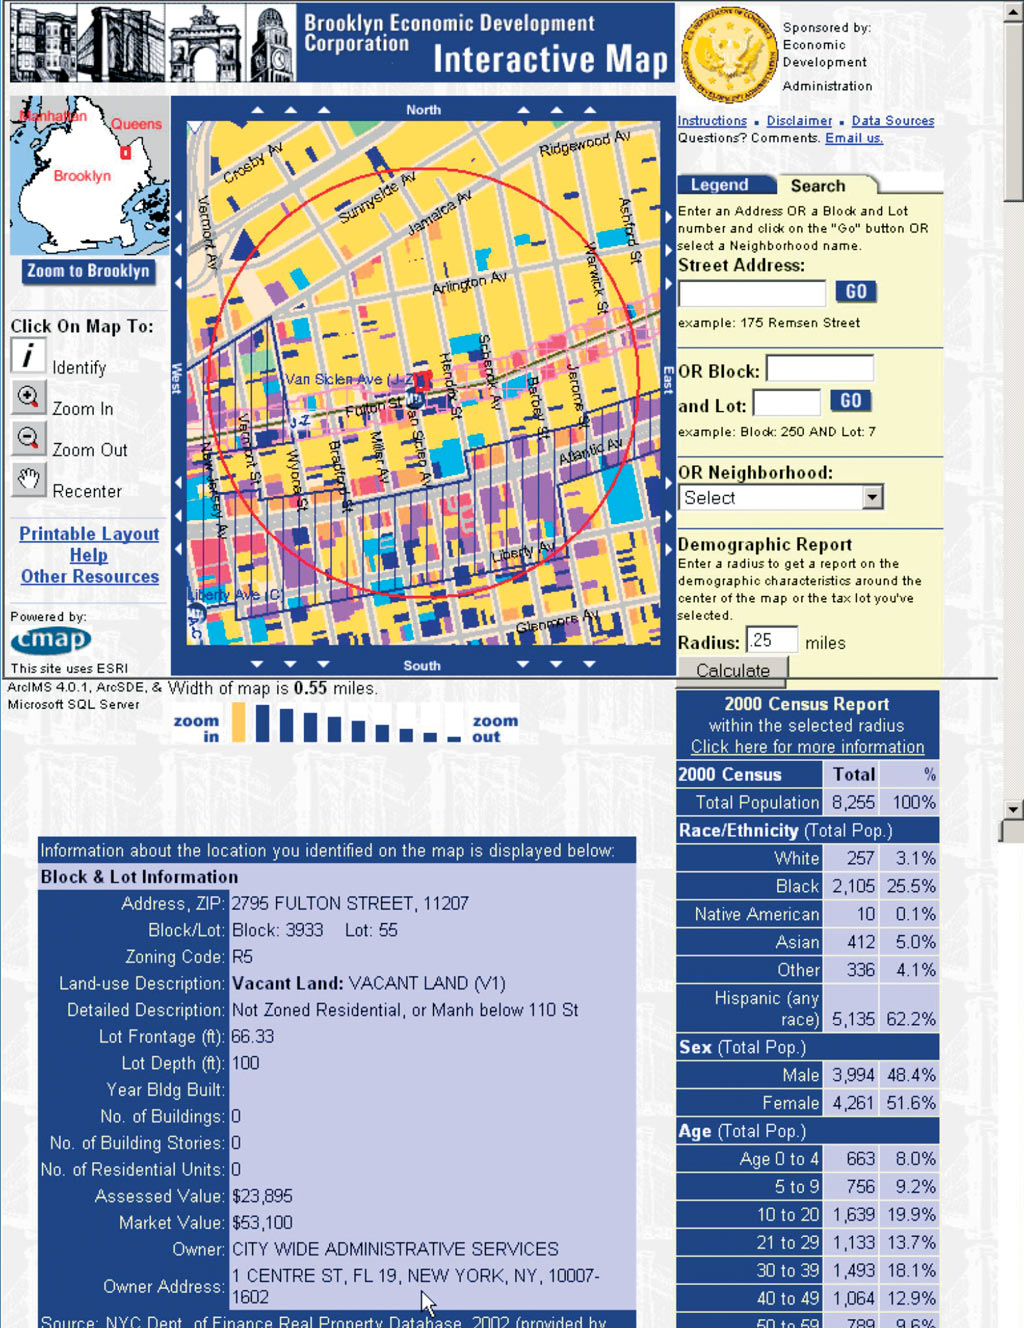 ArcNews Winter 2004/2005 Issue -- CMAP's GIS Service Bureau ... on map for science, map for states, map for writing, map for realtors, map for students, map for cities, map for travel, map for transportation, map for business, map for economy, map for leadership, map for food, map for history, map for community, map for marketing, map for taxes, map for health care,